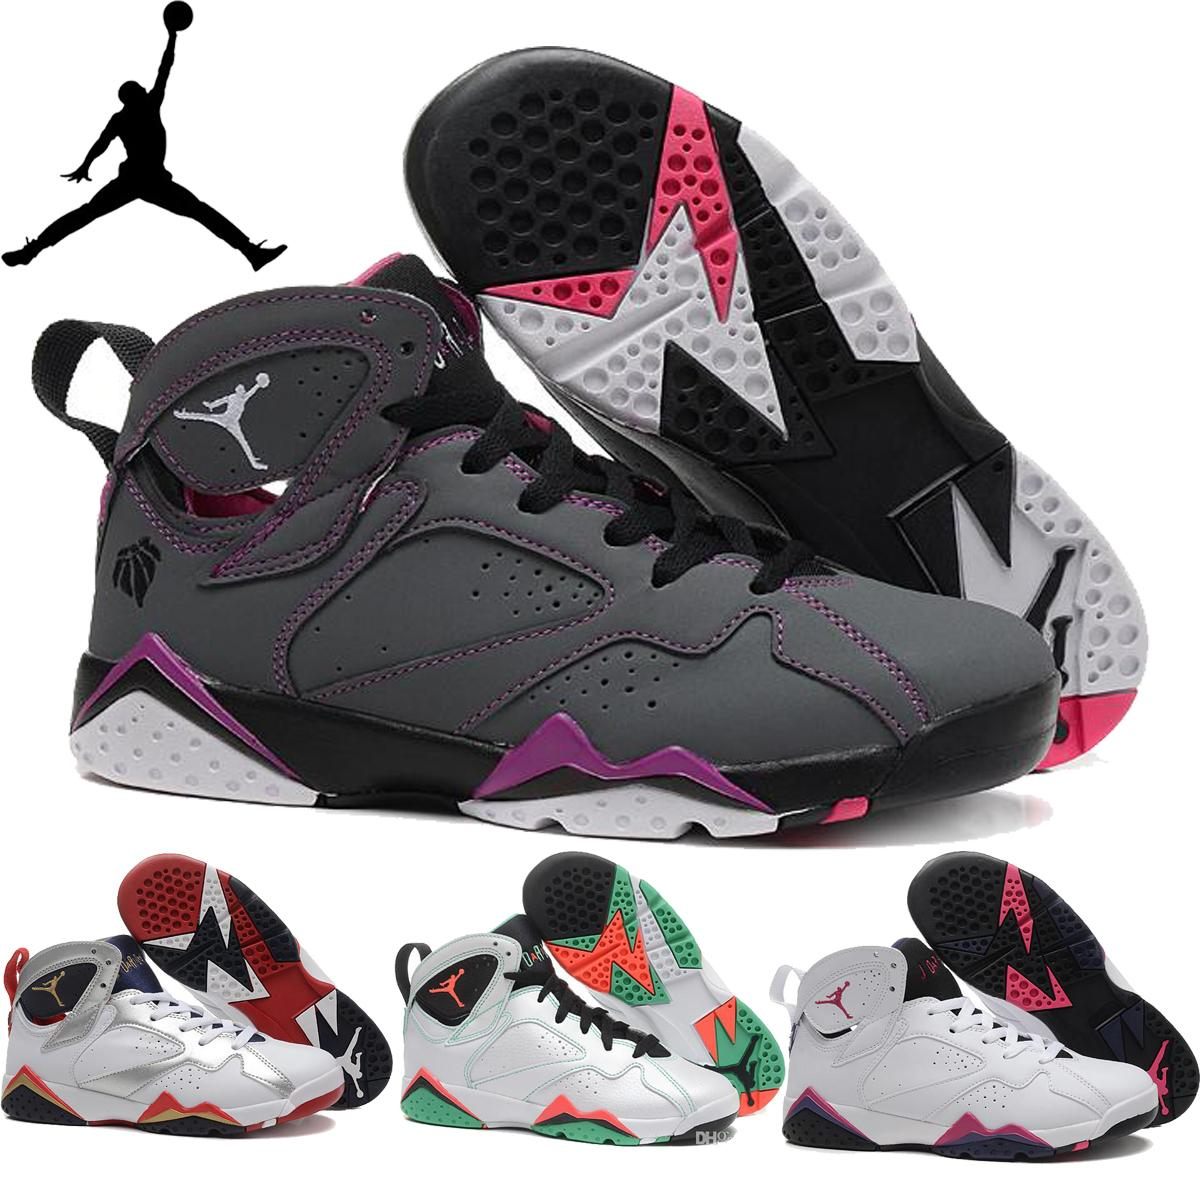 Nike Air Jordan 7 Retro Vii Gs Hot Lava Sweater Olympic Hare French Blue  Womens Basketball Shoes Sneakers Aj7 Retro 7 J7 Women Girl Sneakers Jordans  Running ...